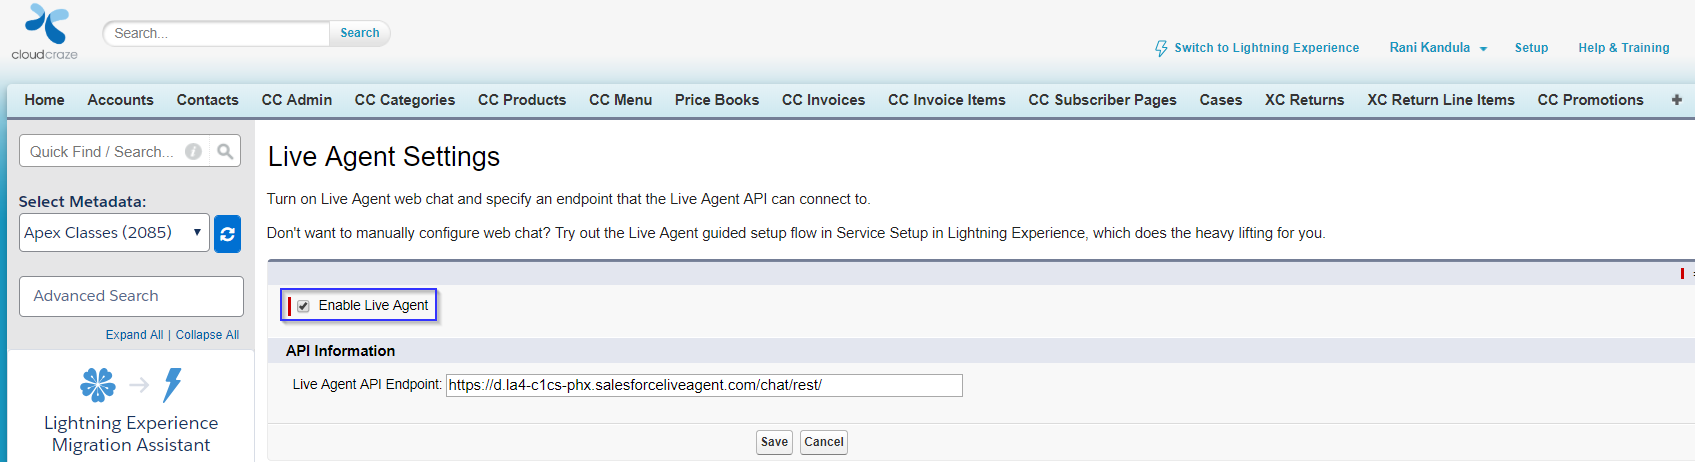 Implementing Live Agent on Salesforce B2B Commerce in 7 Easy Steps - Step One